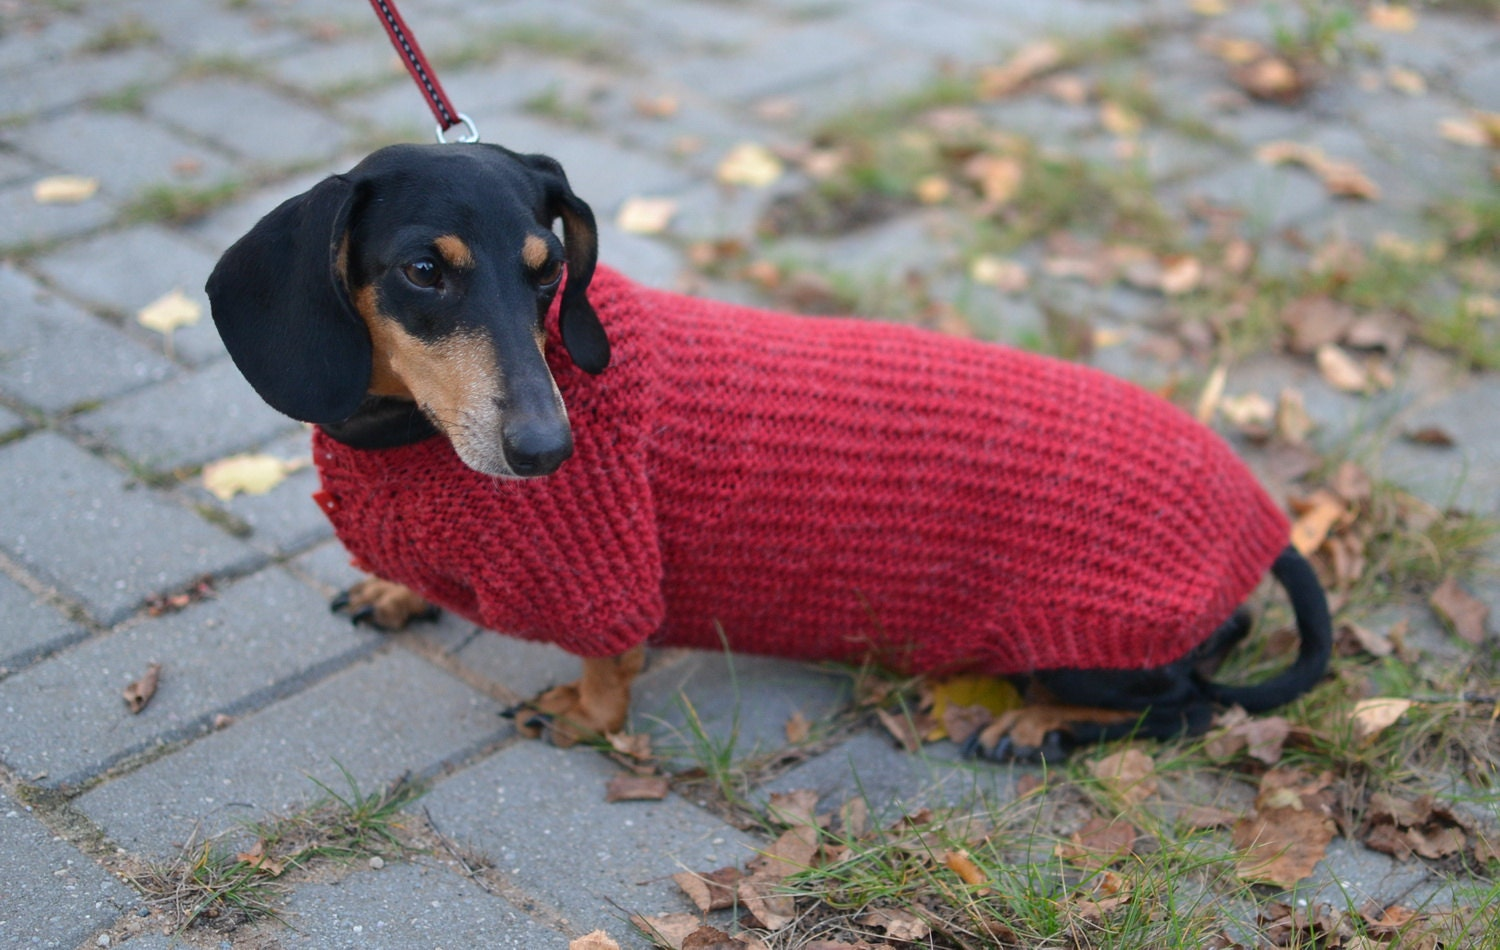 Knitting Patterns For Dachshund Dog Sweaters : Dog jumper Dachshund clothes Dog Sweater Dachshund sweater